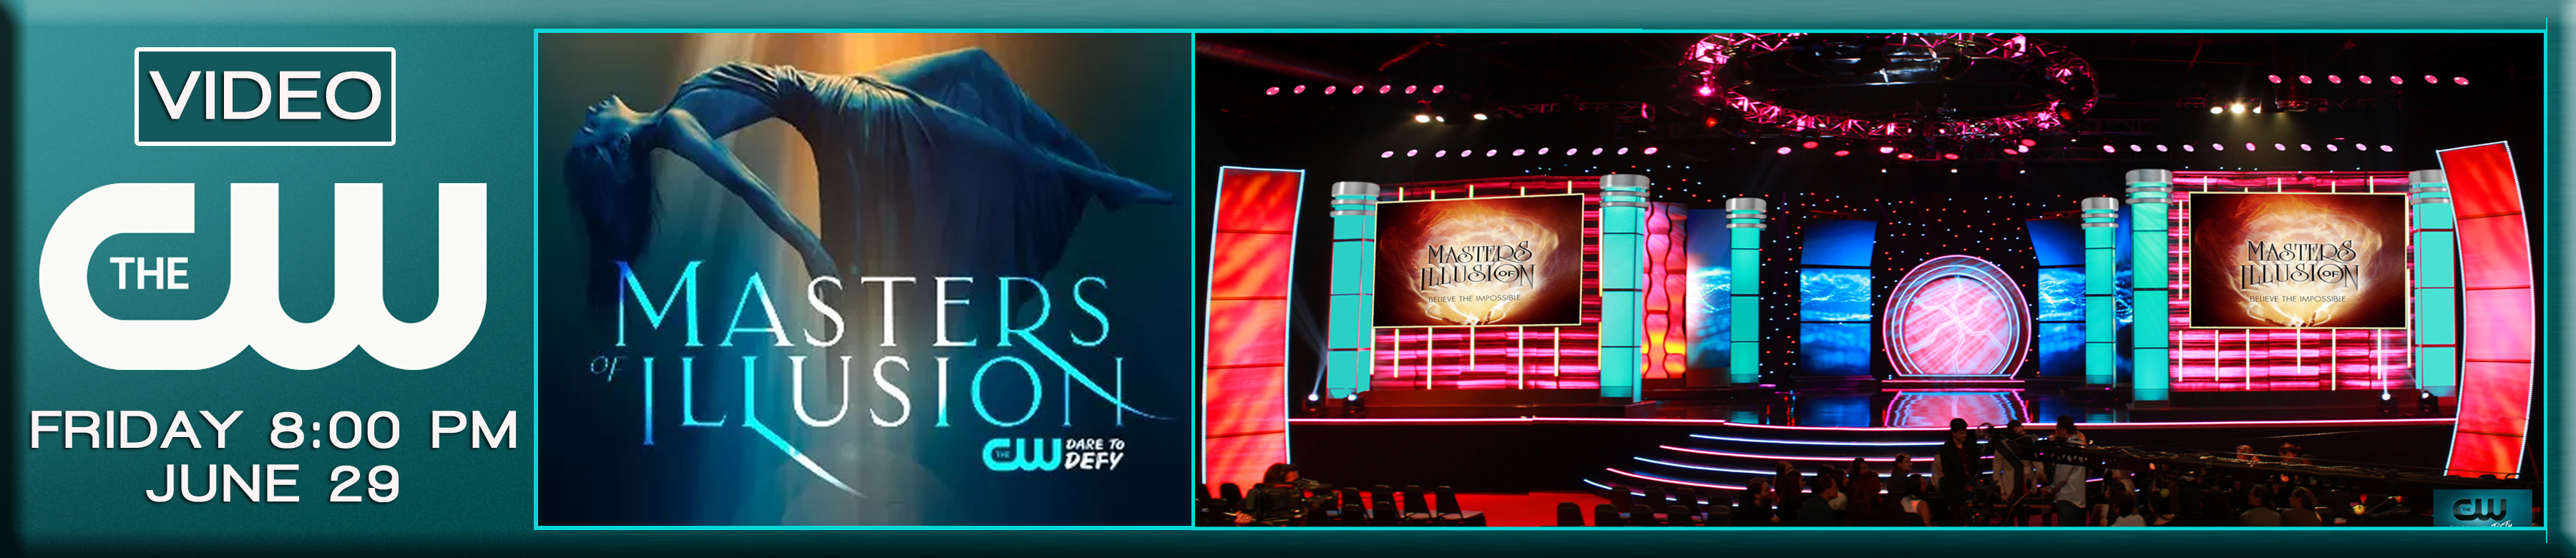 Masters of Illusion Las Vegas magic show